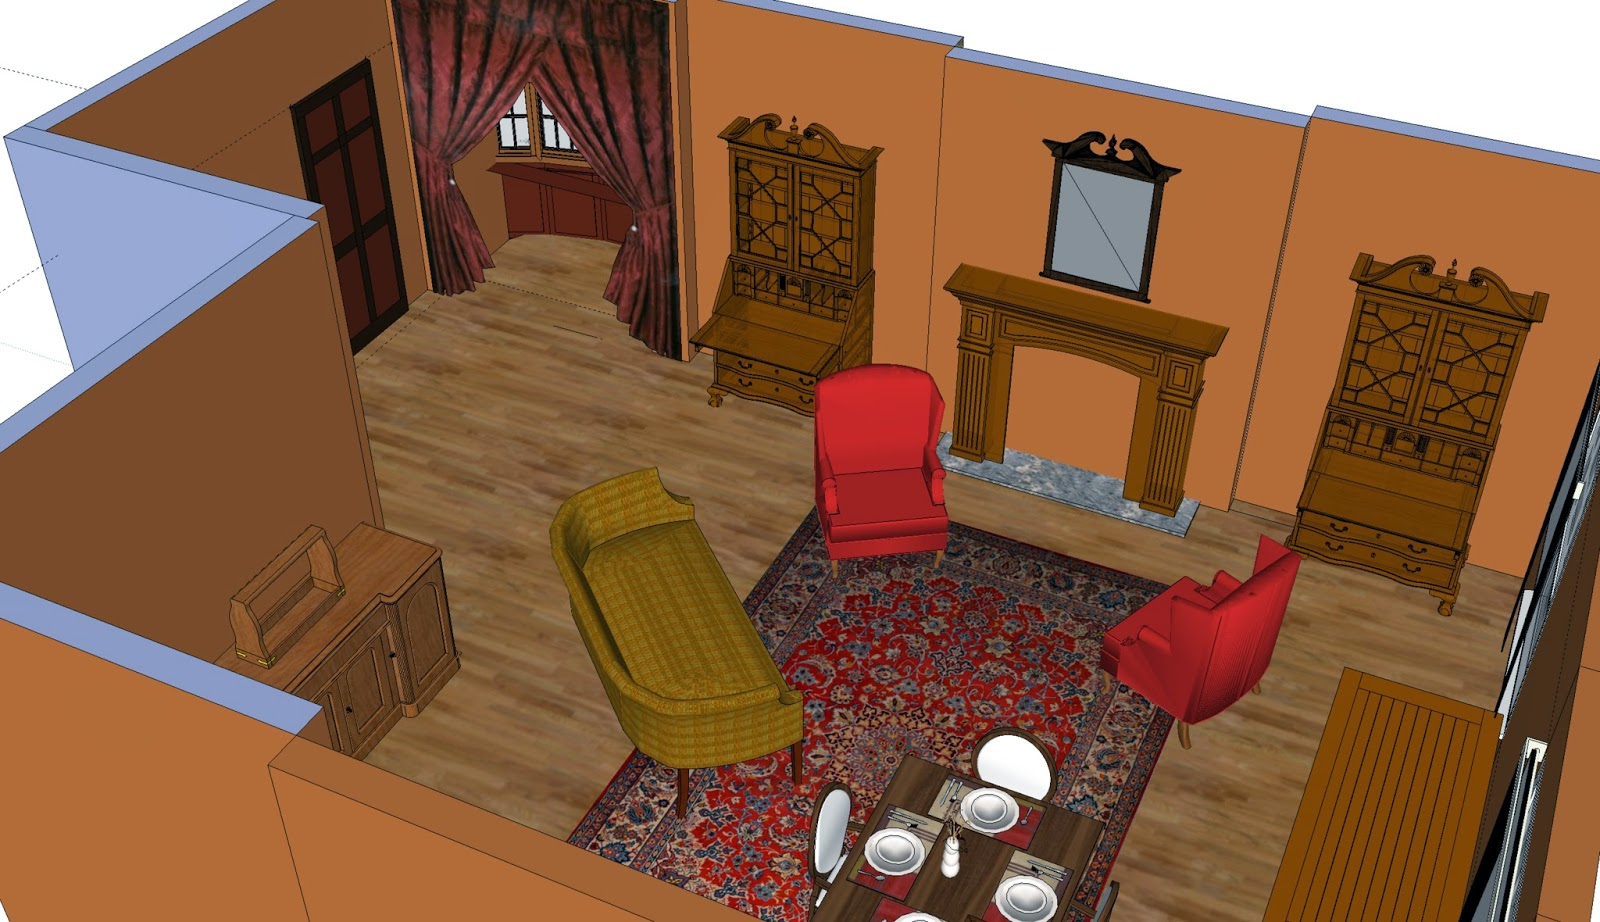 Mock-up of what 221B Baker Street looked like, according to Sidney Paget's drawings